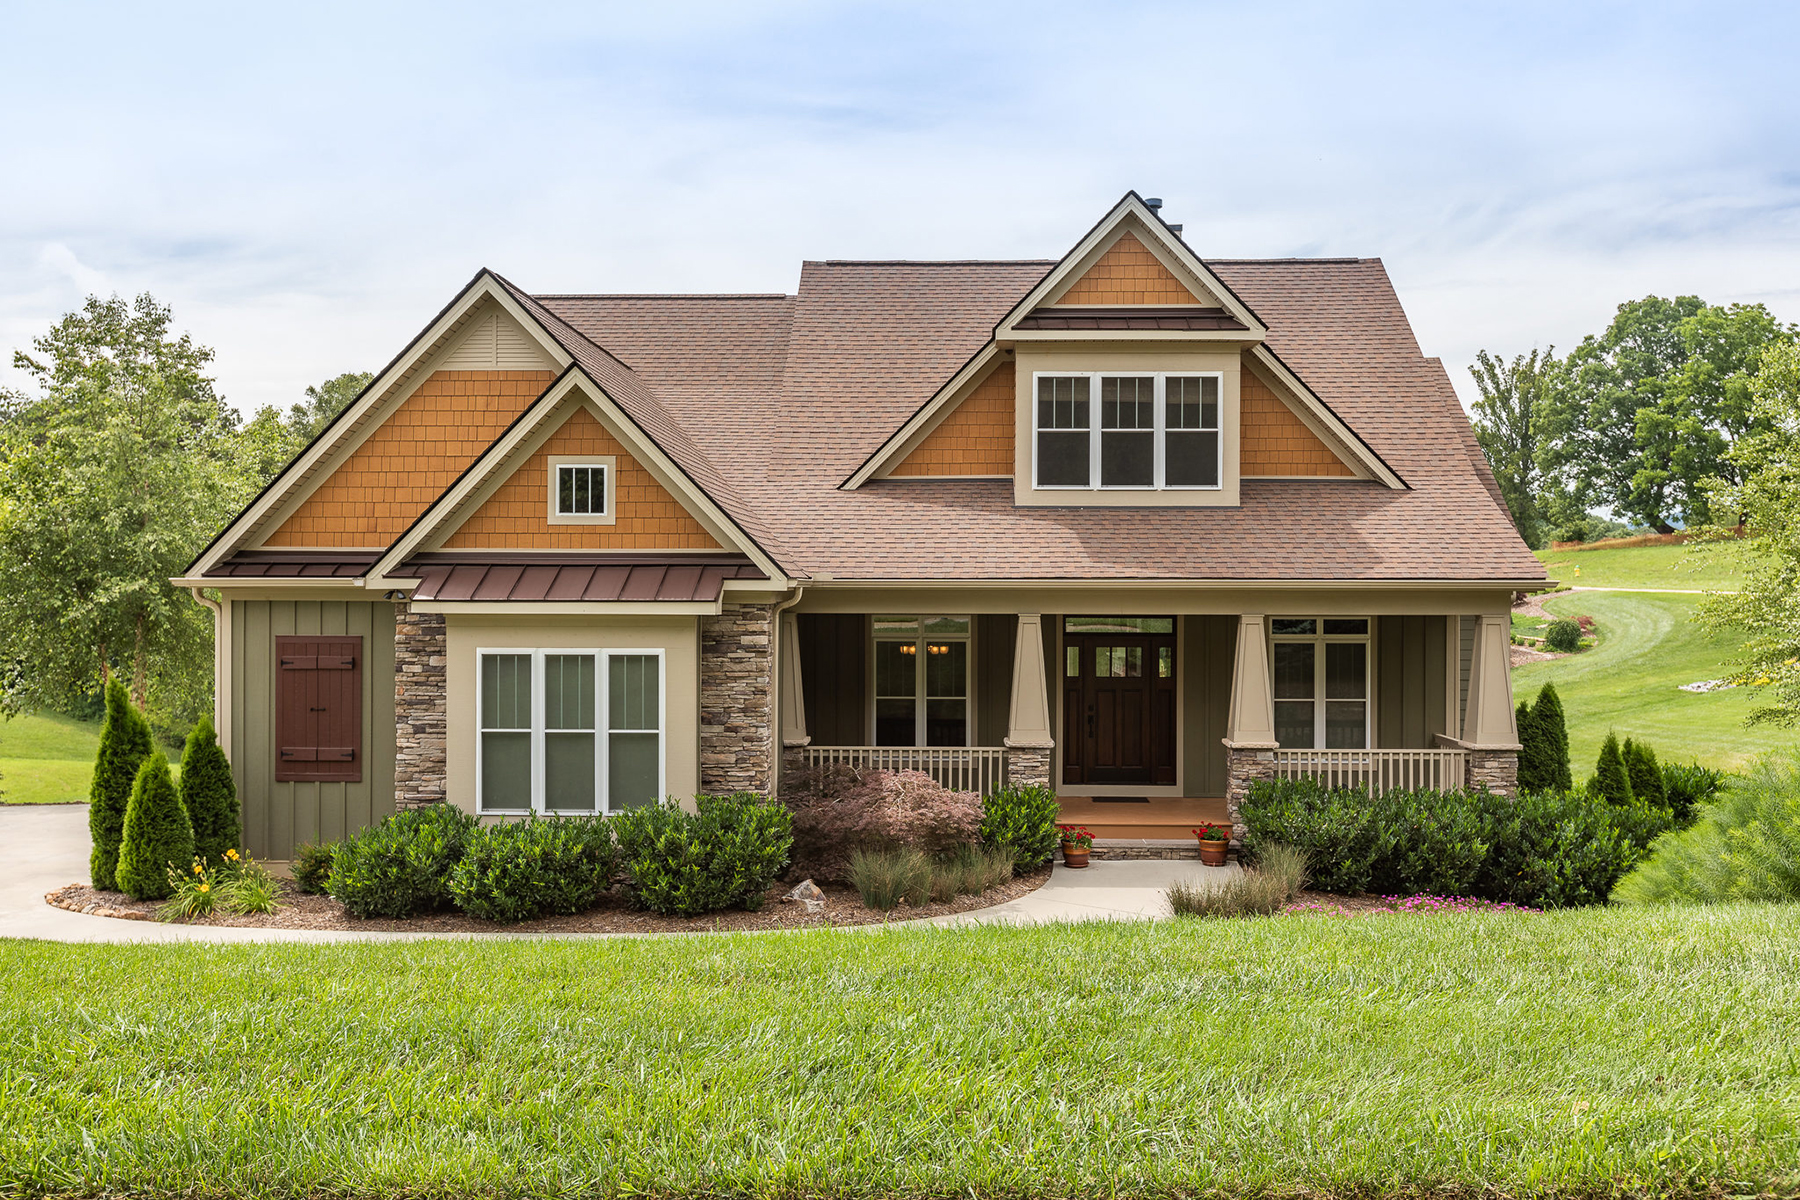 Single Family Homes for Active at GRAND HIGHLANDS AT WATERFORD LAKES 32 Lake Vista Dr Fletcher, North Carolina 28732 United States